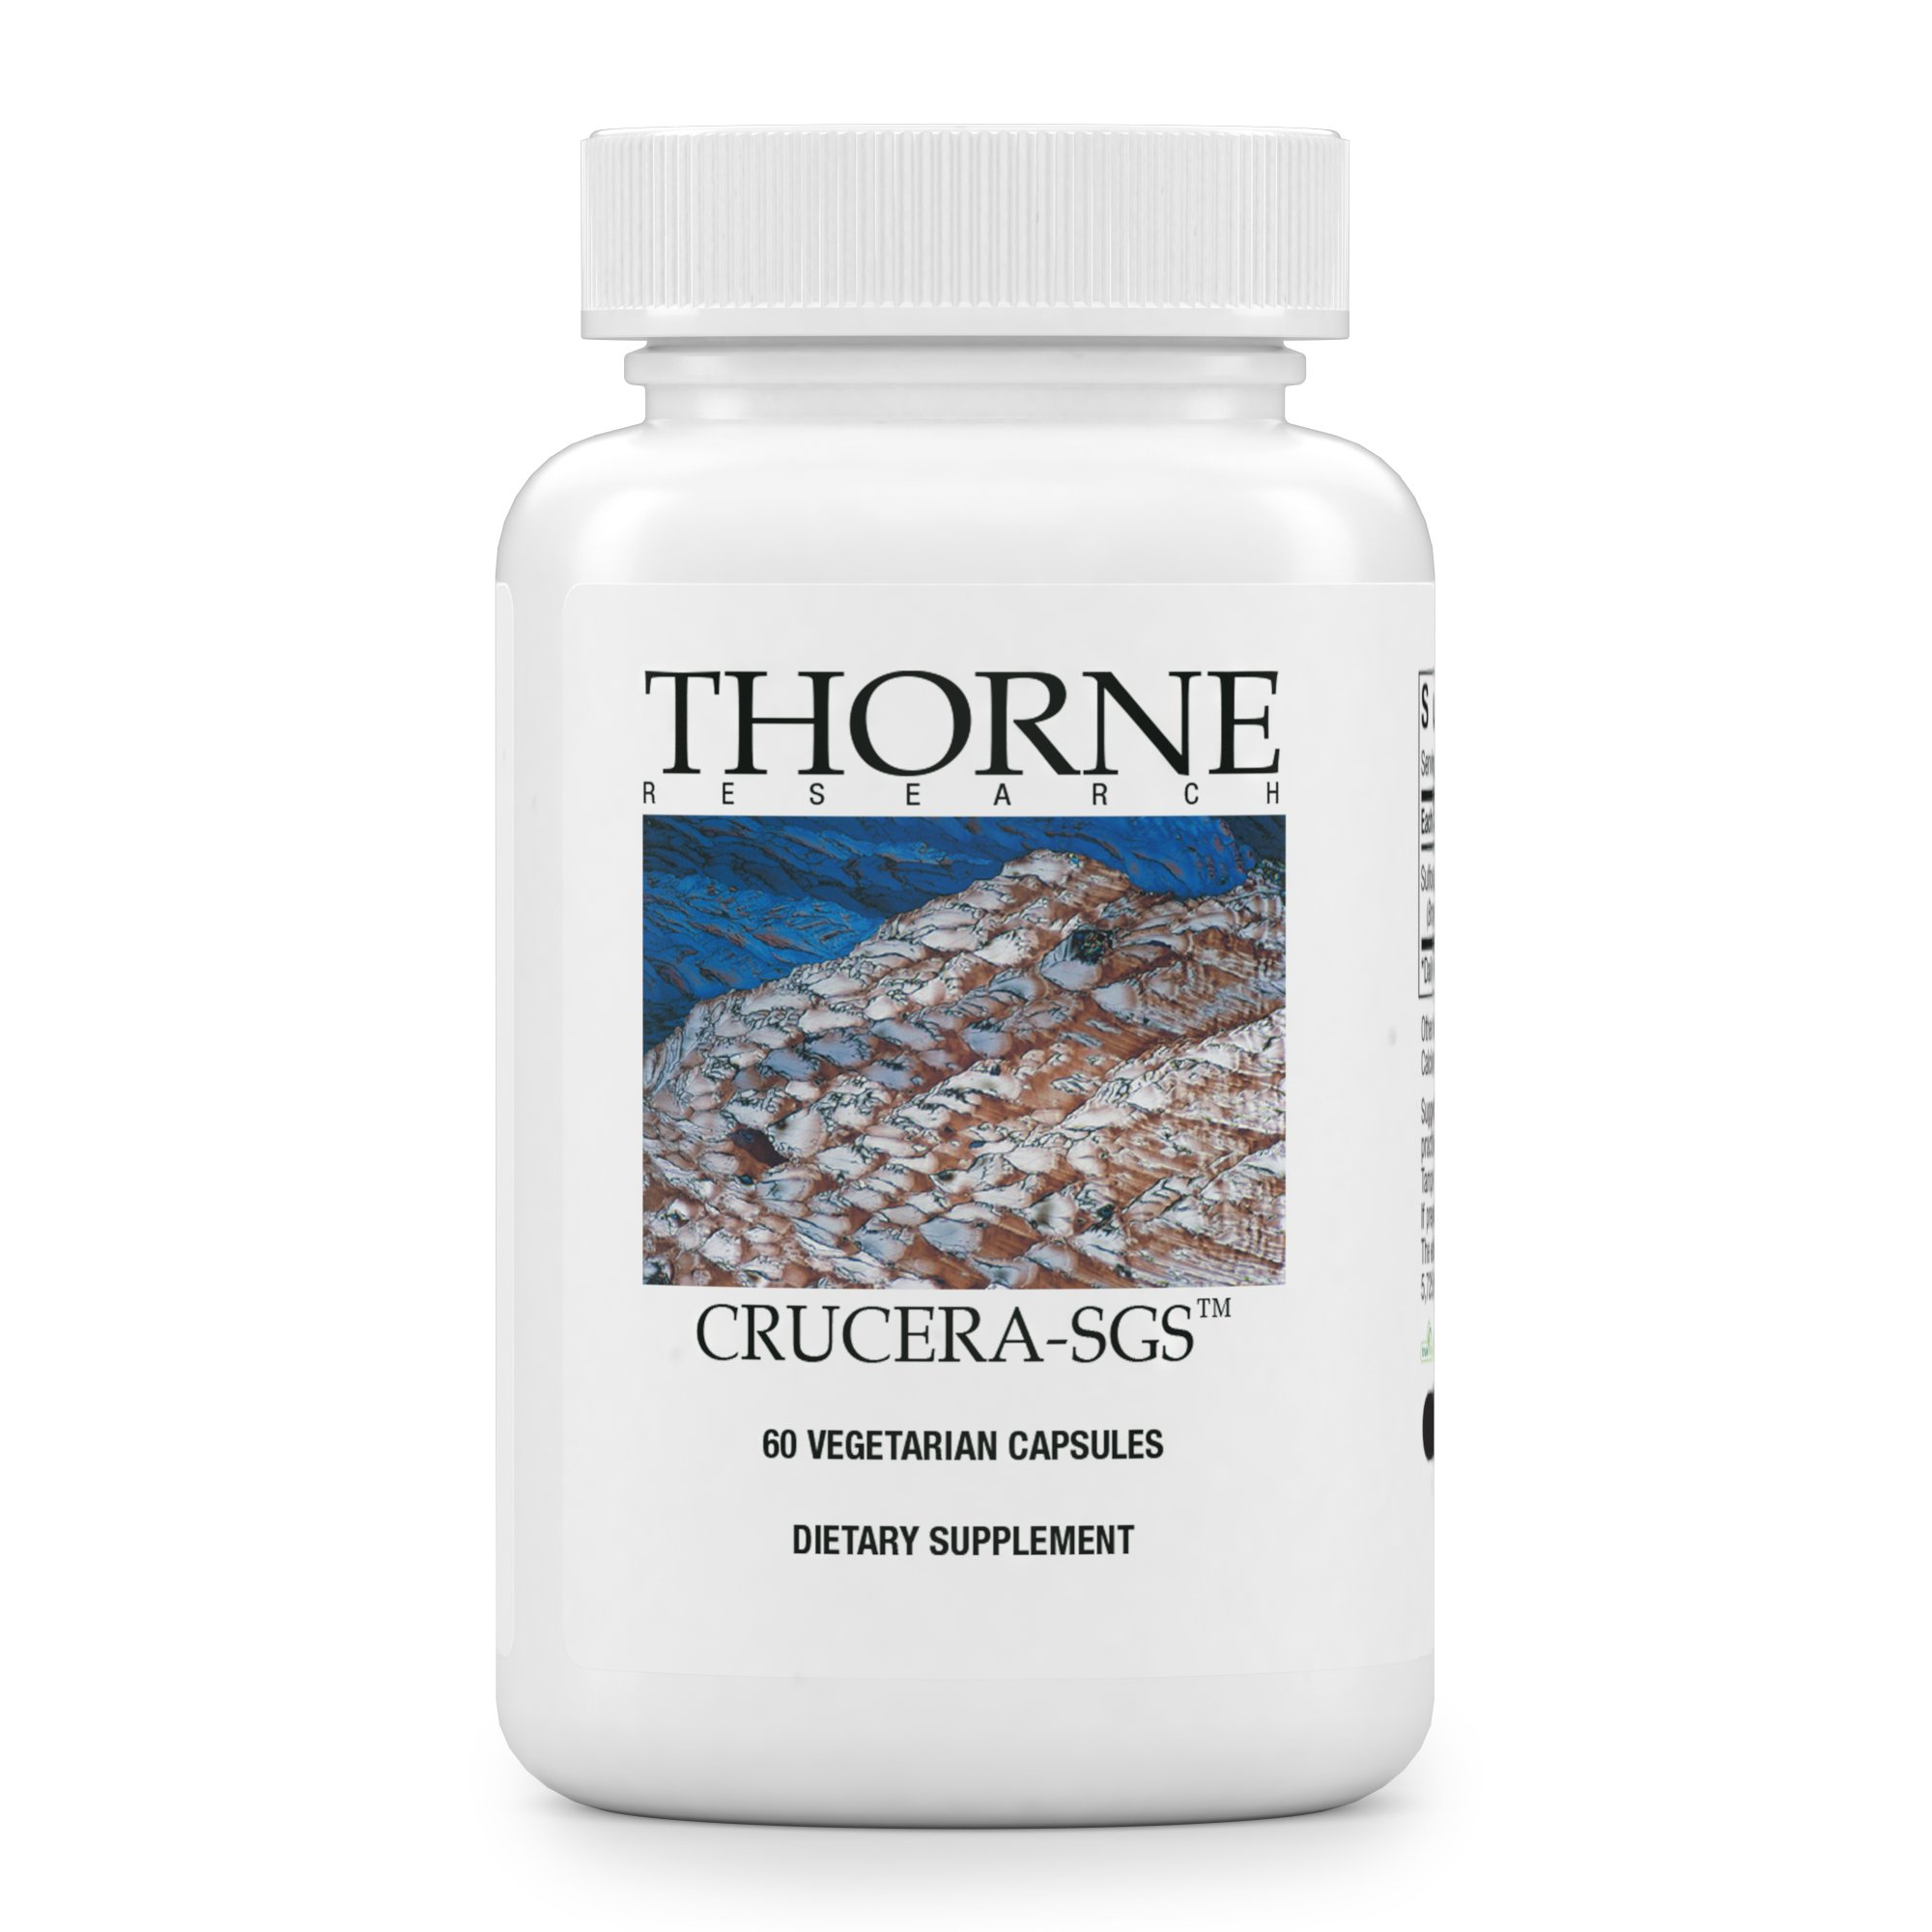 Thorne Research - Crucera-SGS - Broccoli Seed Extract for Antioxidant Support - Sulforaphane Glucosinolate (SGS) - 60 Capsules